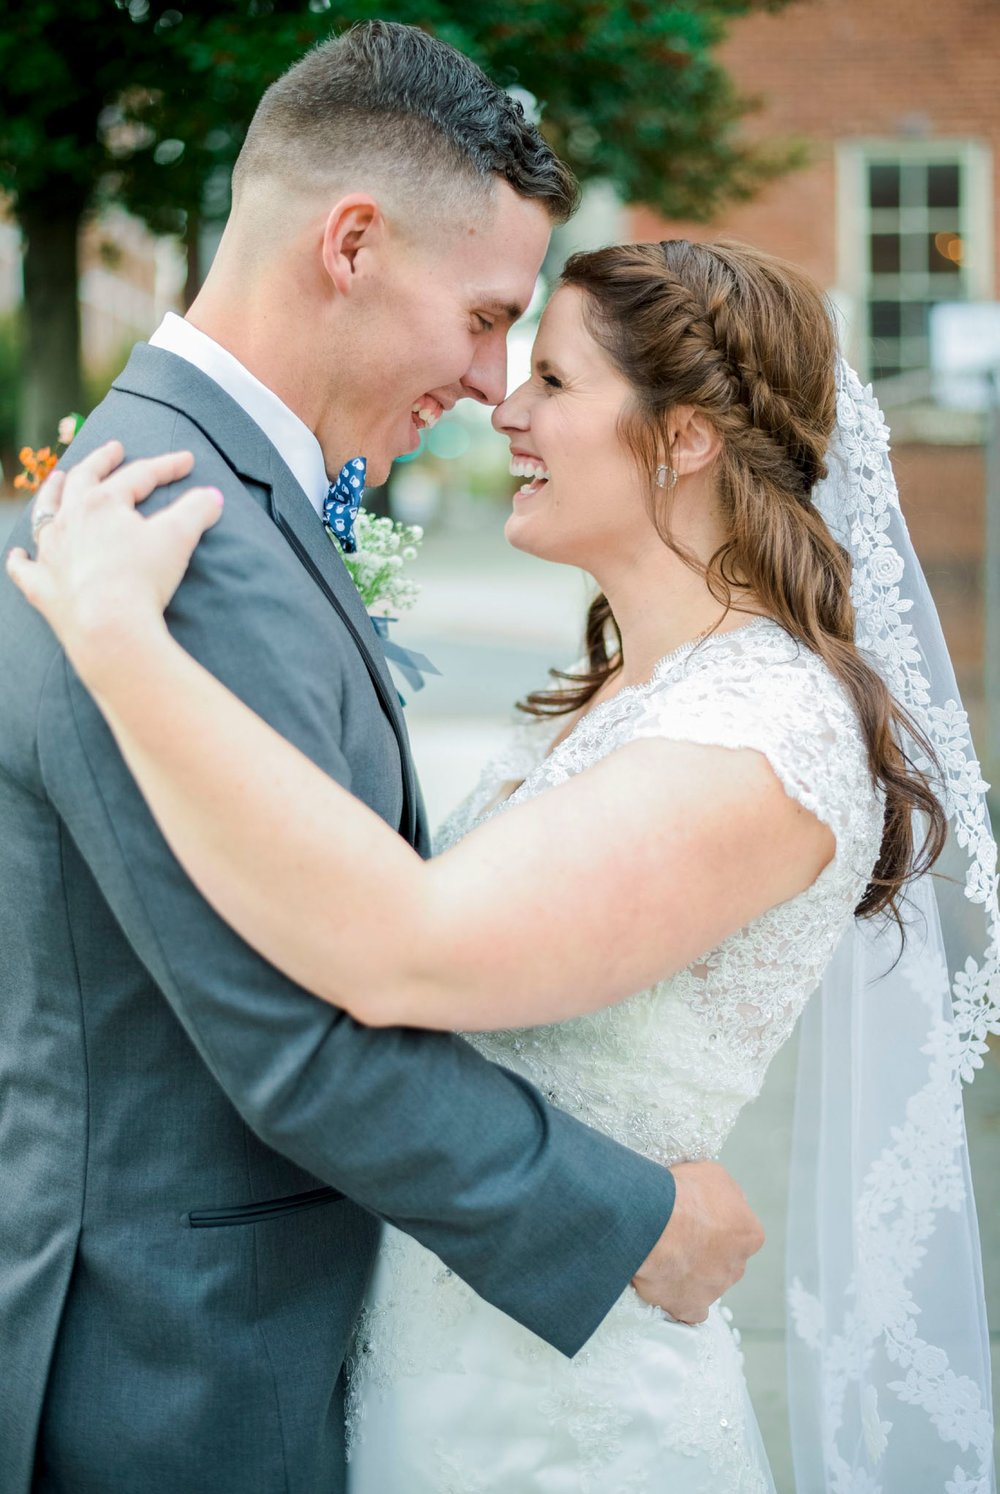 Trescaon8th_DowntownLynchburg_Virginiaweddingphotographer 59.jpg